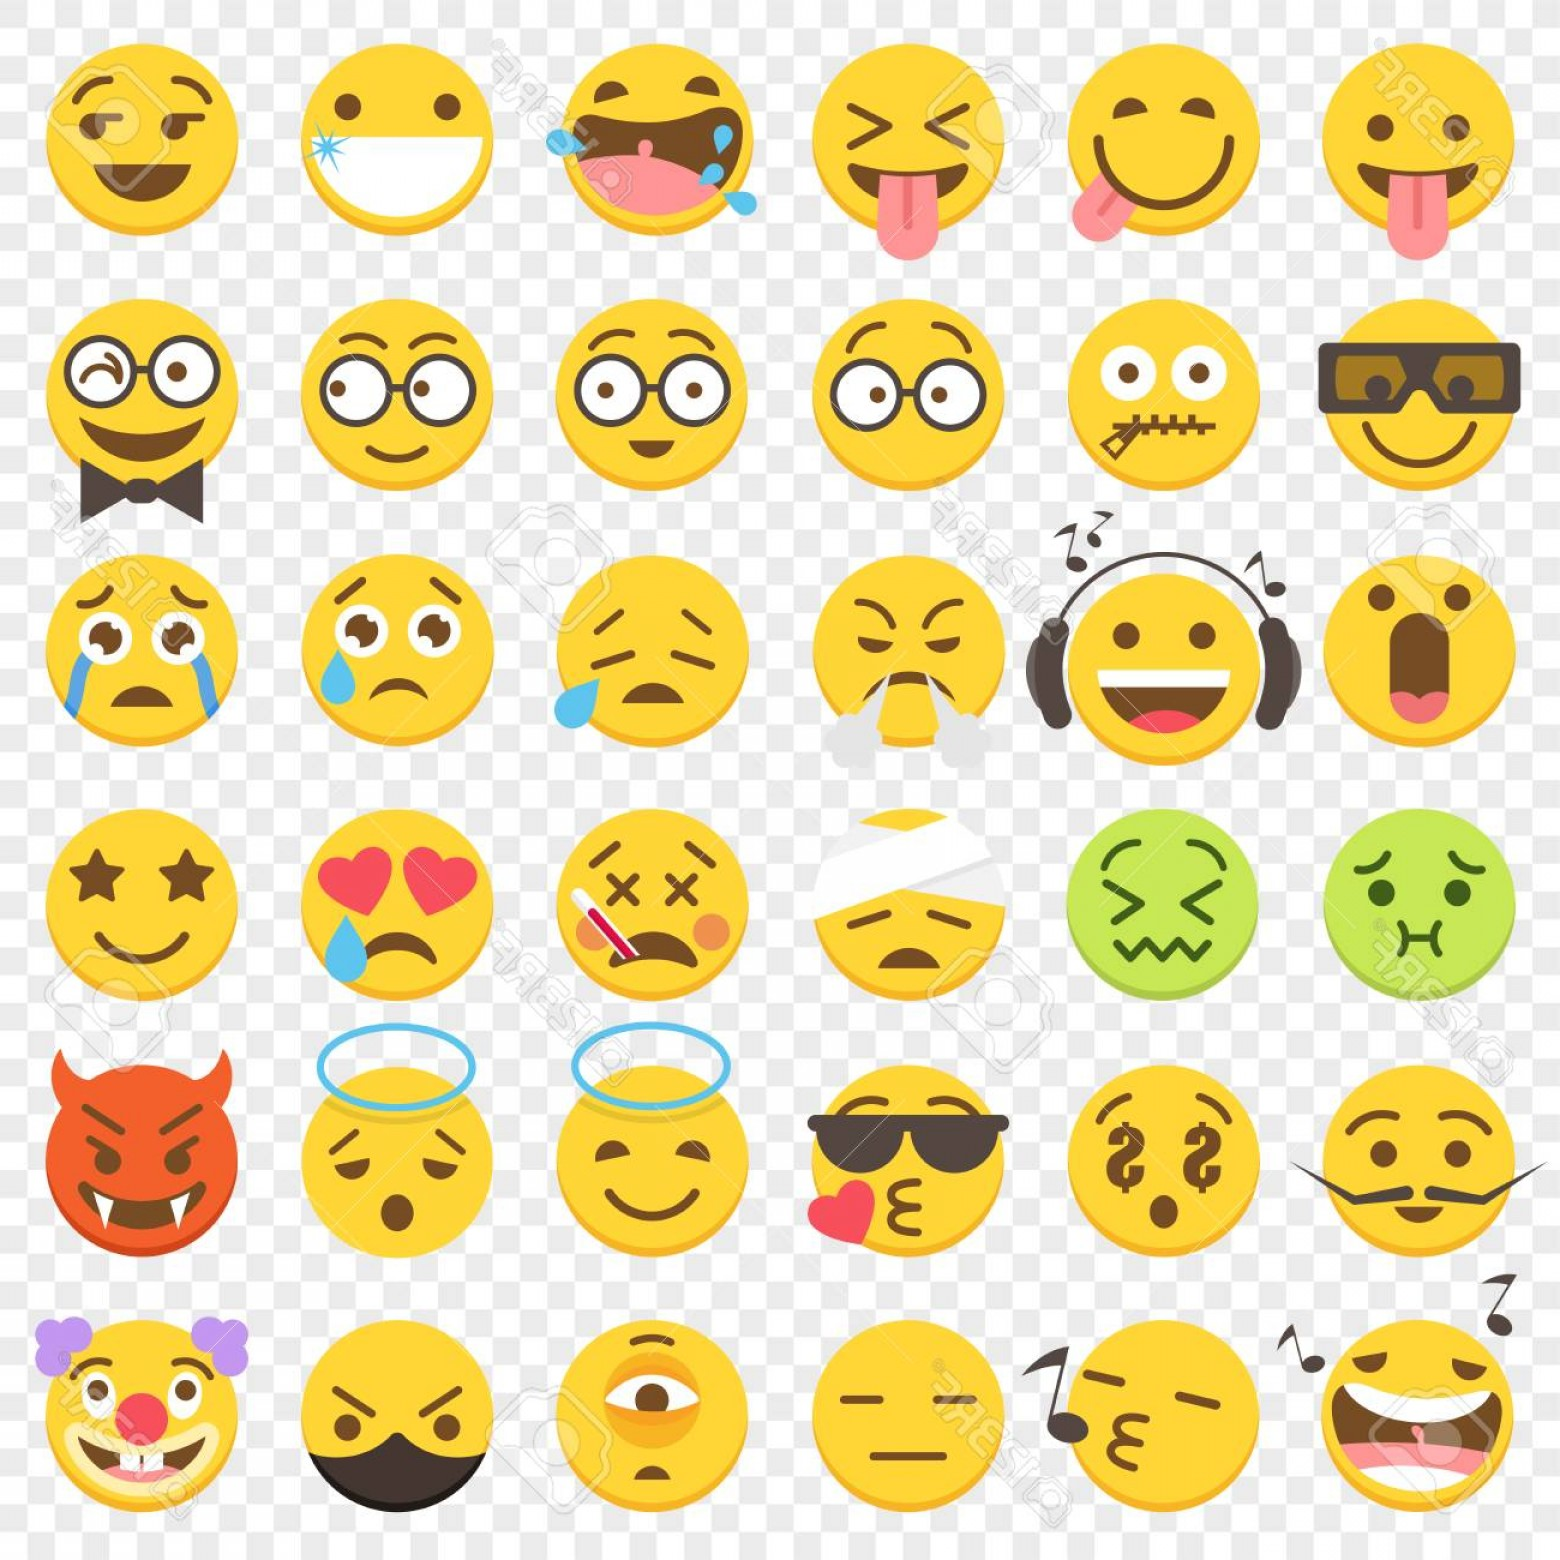 Popular Vector Emoji: Photostock Vector Second Big Set Of Emoji Popular Vector Illustrations In Flat Graphic Style